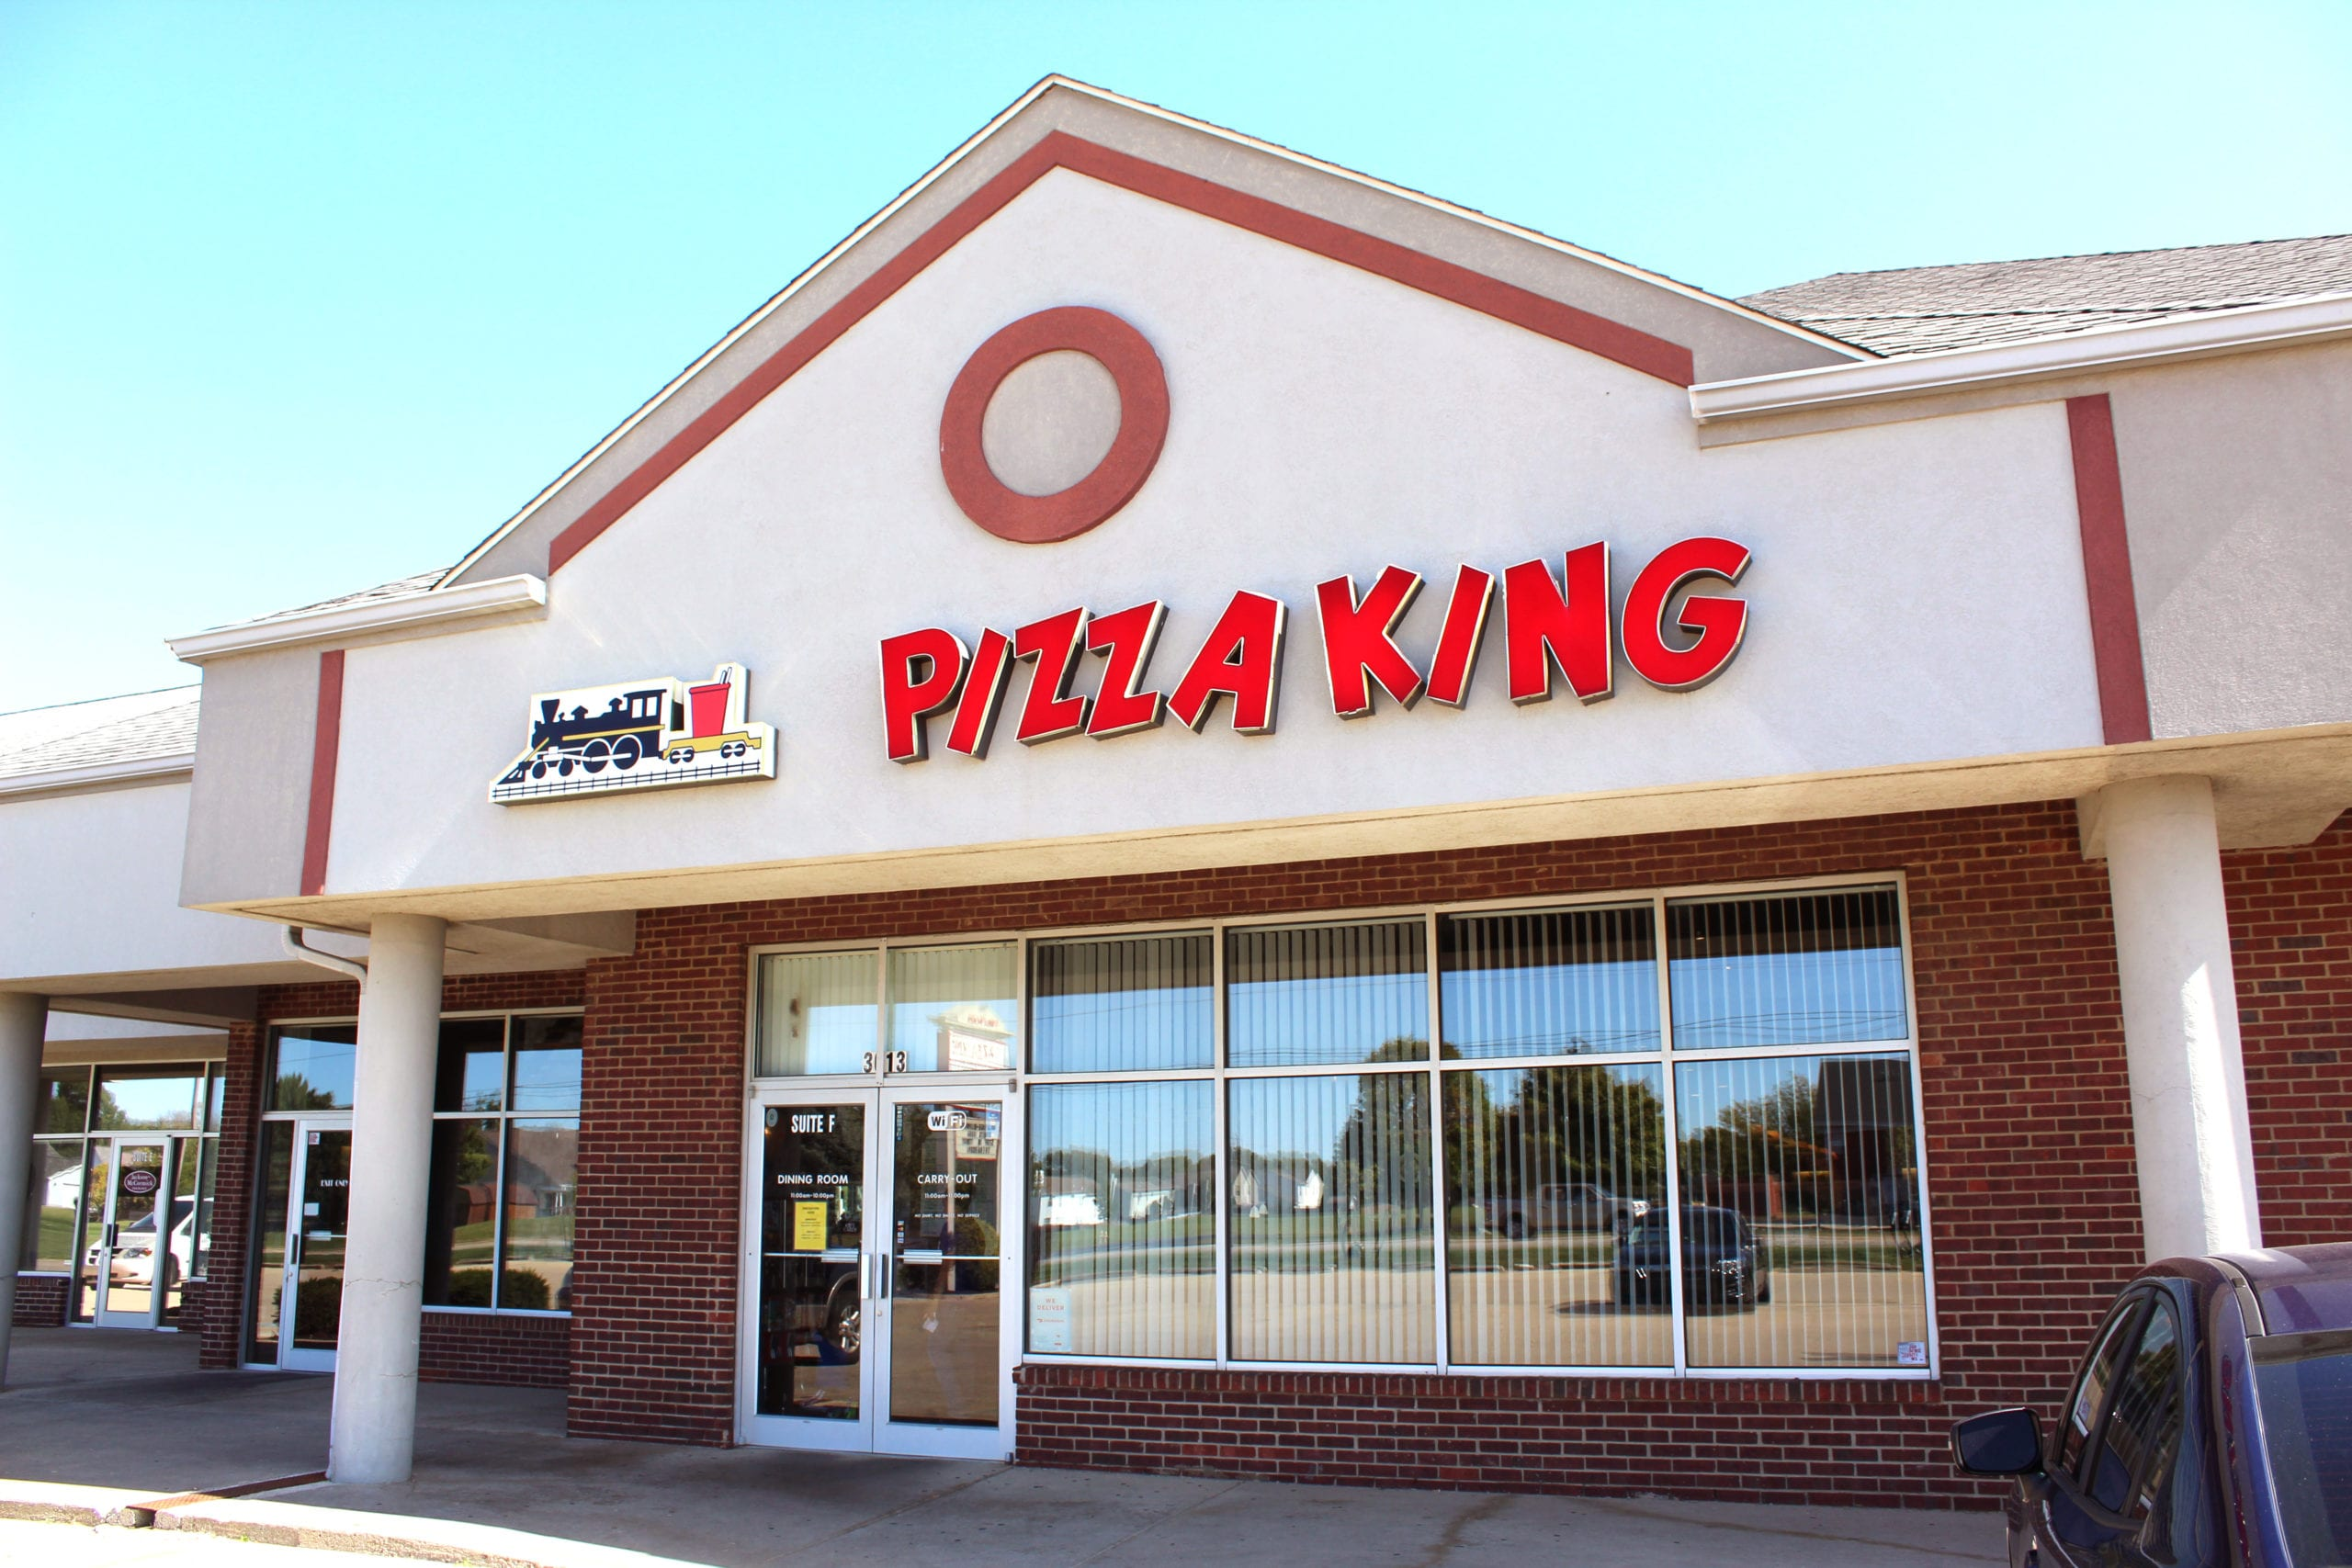 stop by our wea plaze pizza king location in the south side of lafayette indiana